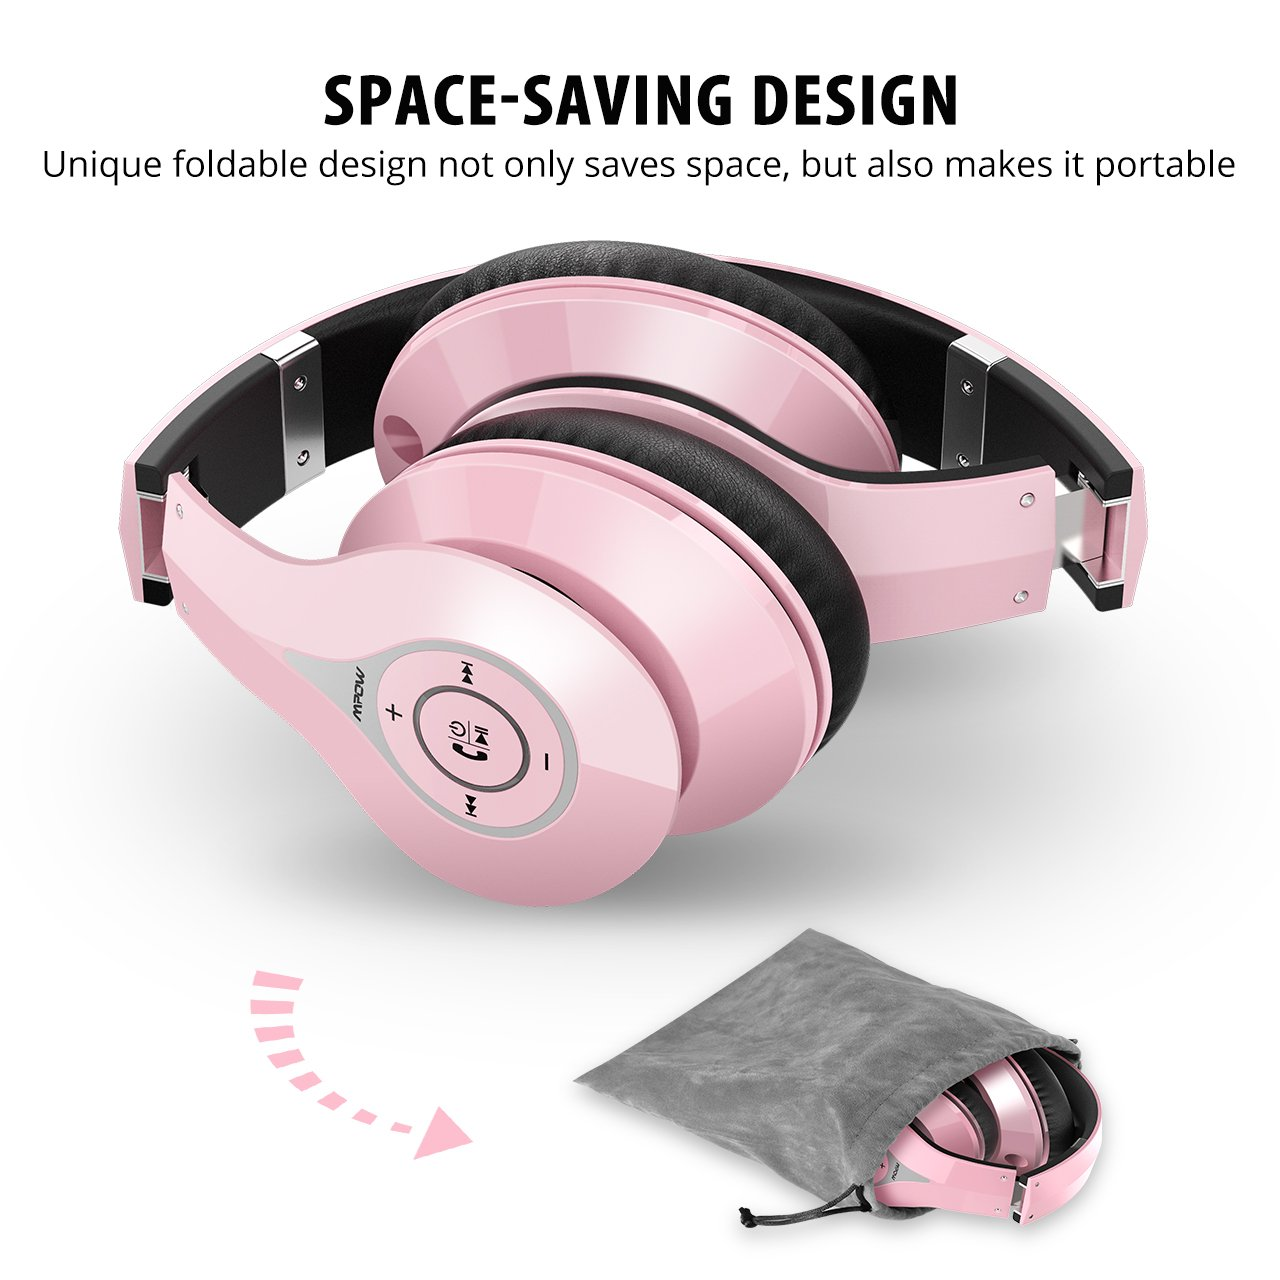 91b04803d27fe7 Stereo Hi-Fi Sound; Designed for an excellent music & communication  experience, Mpow headset ...